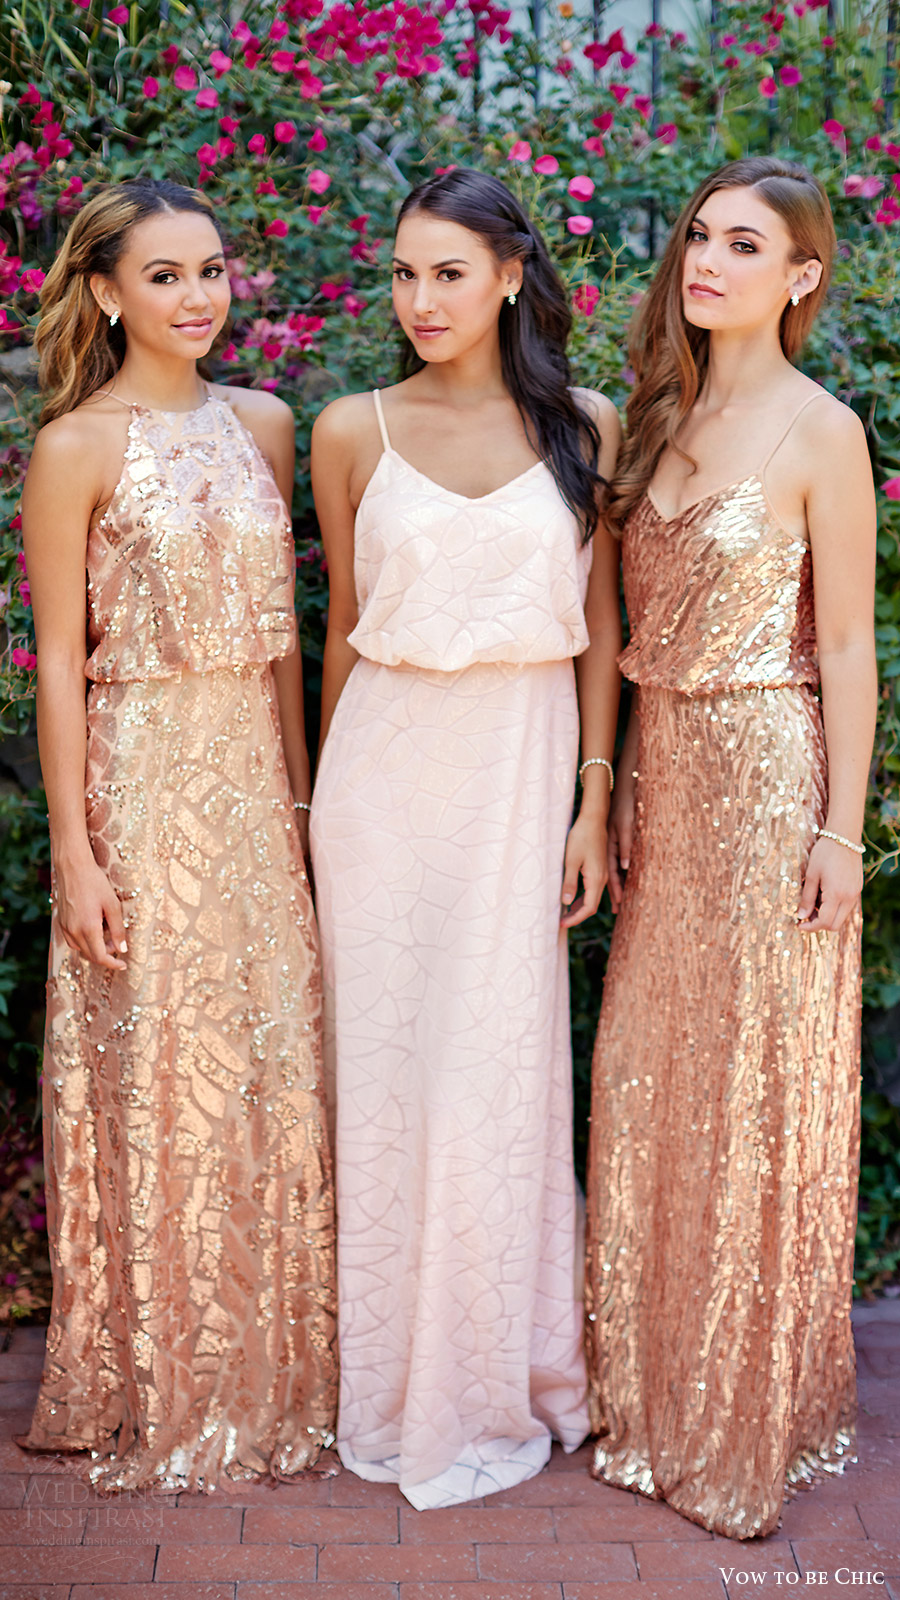 Bridesmaid Trend Report 2016 Featuring Vow To Be Chic Designer